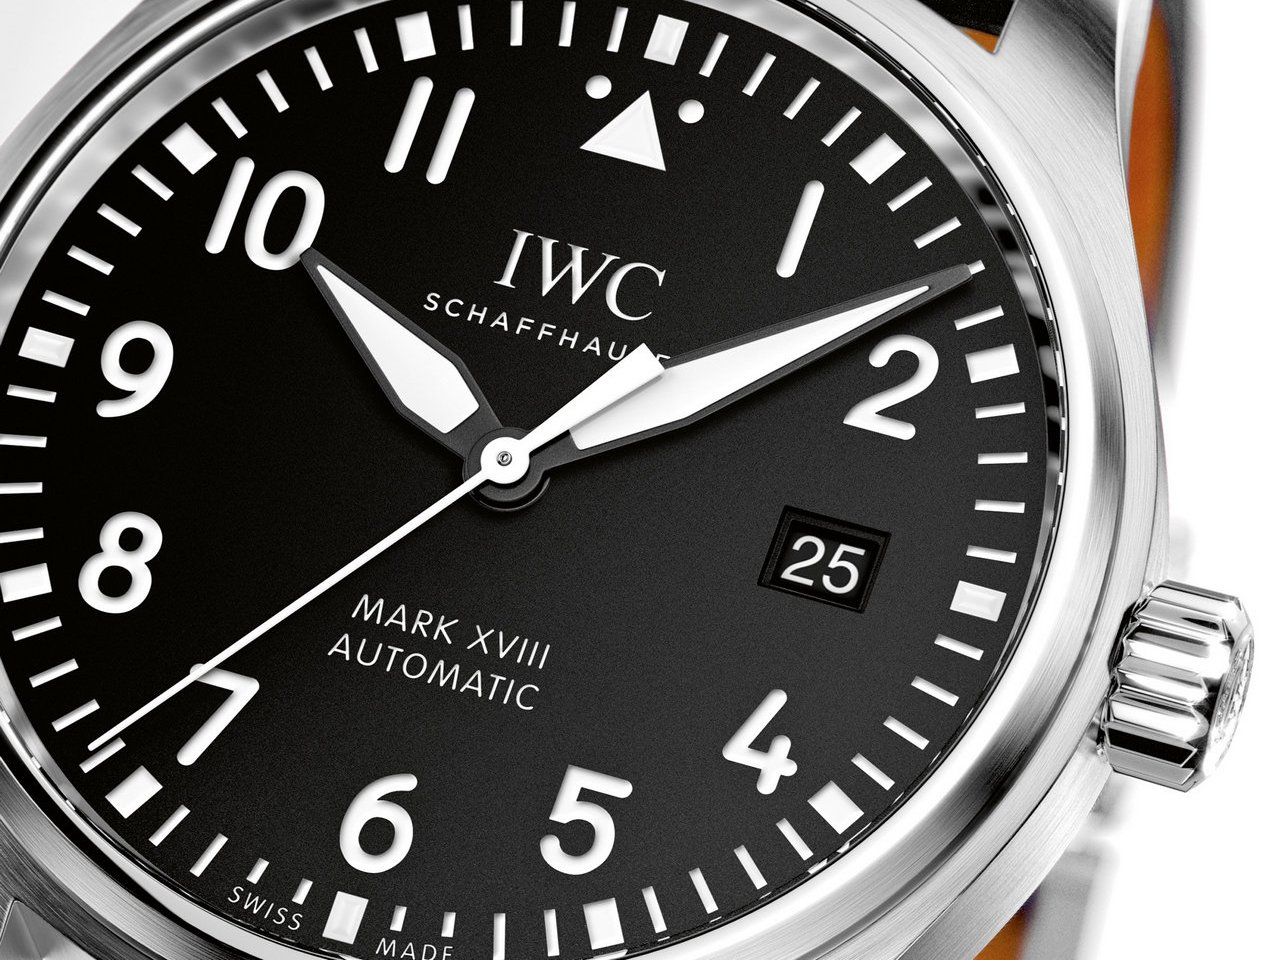 IWC-Pilot-Watch-Mark-XVIII-Ref-IW327001-IW327011-IW327002-0-100_3